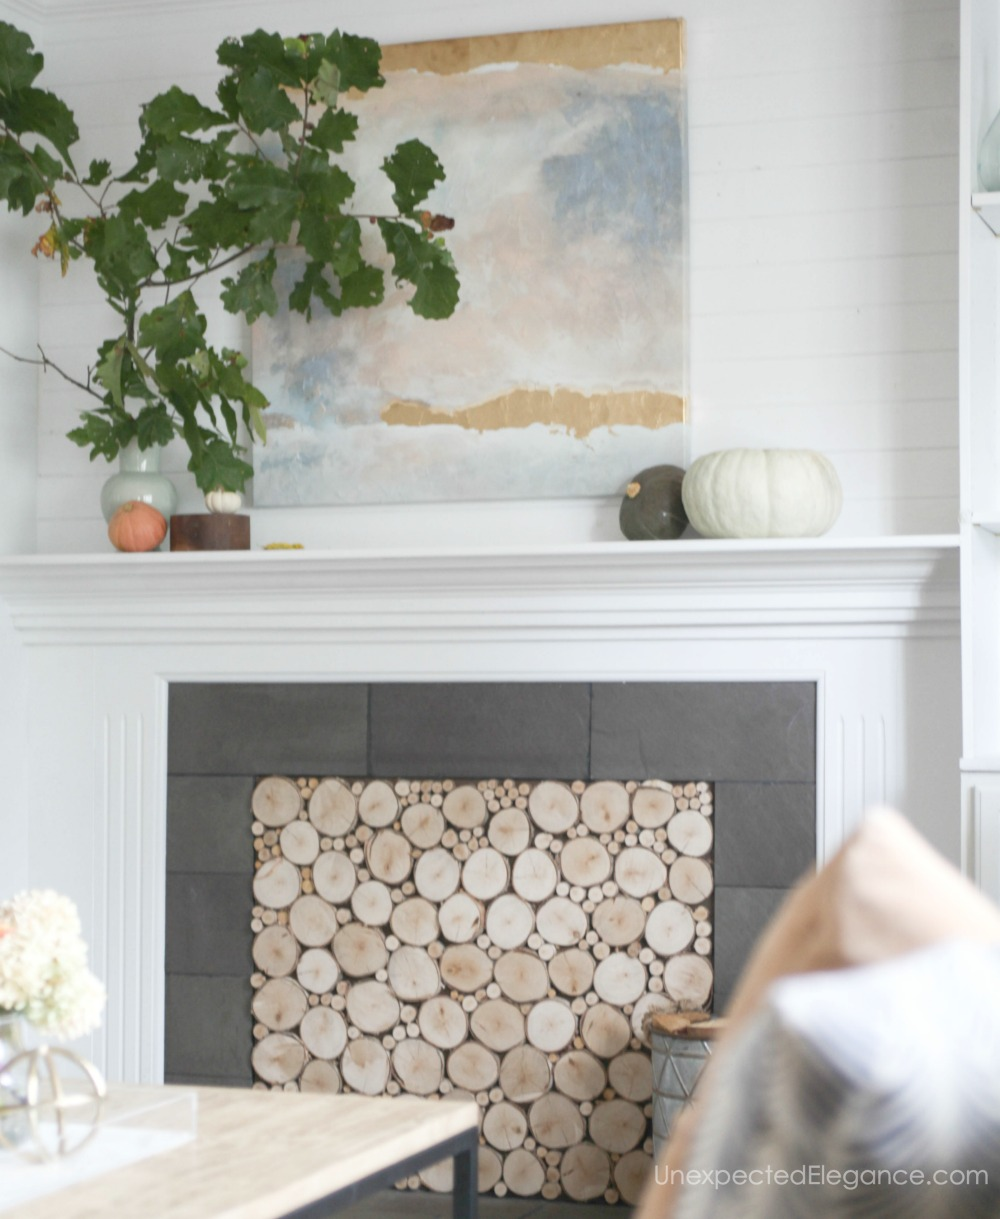 Elegant and simple fall home decor ideas that are very inexpensive.